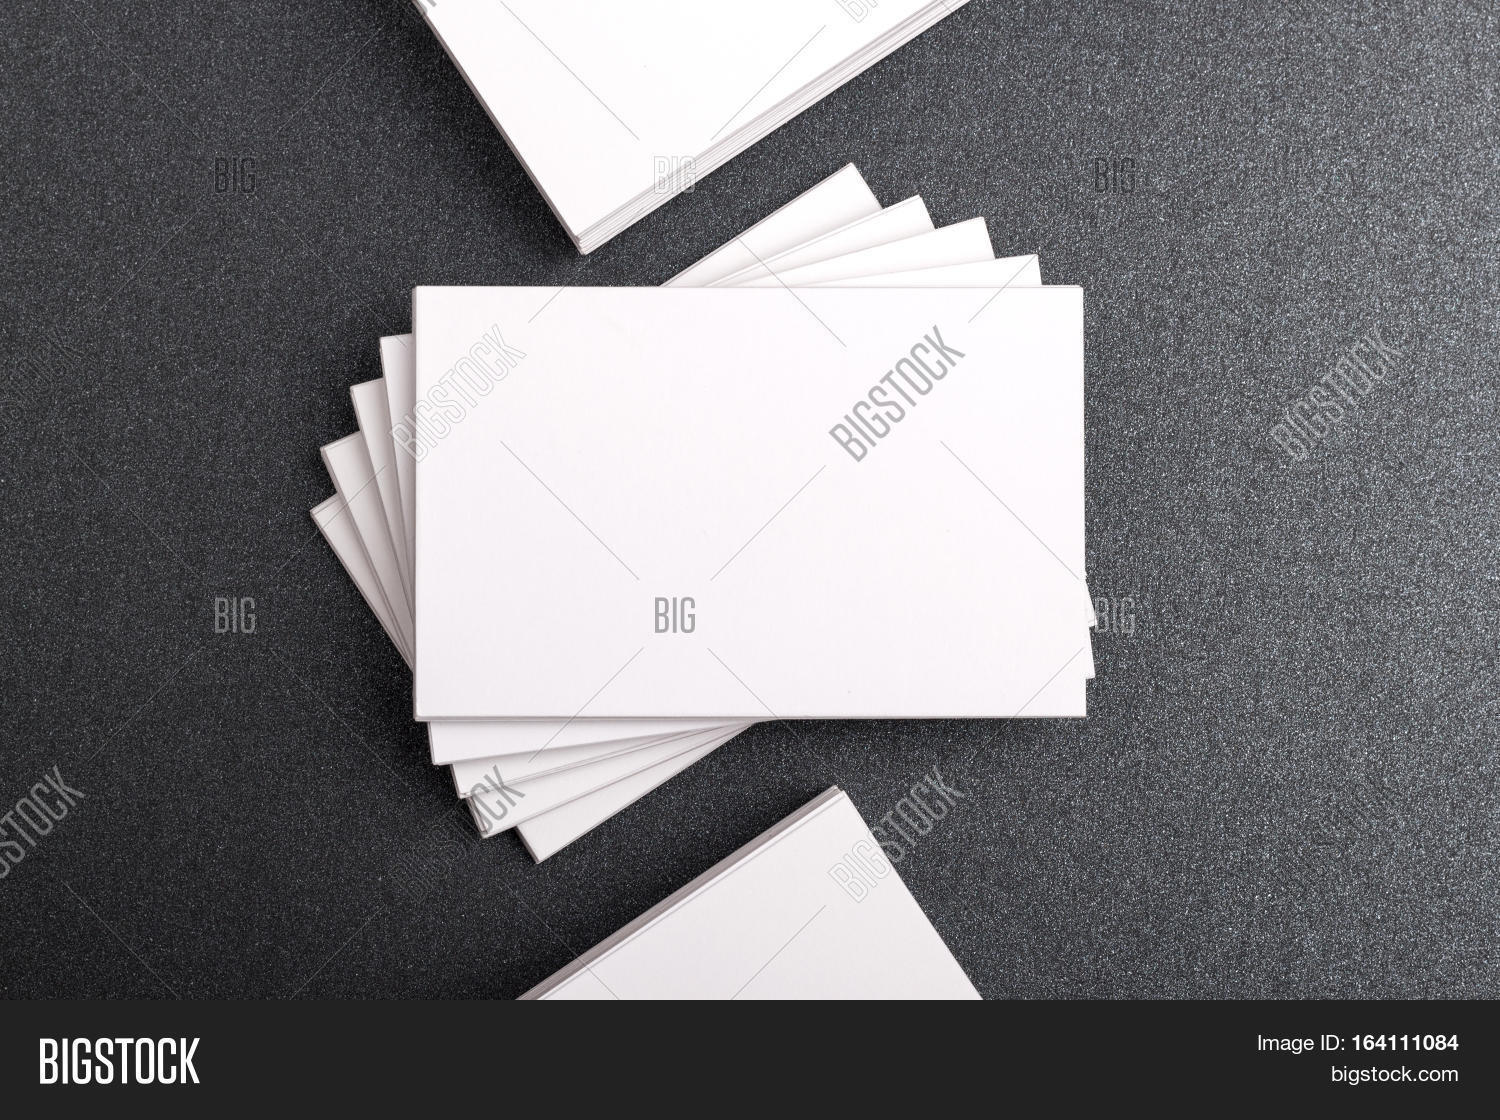 Photo Business Cards. Image & Photo (Free Trial) | Bigstock